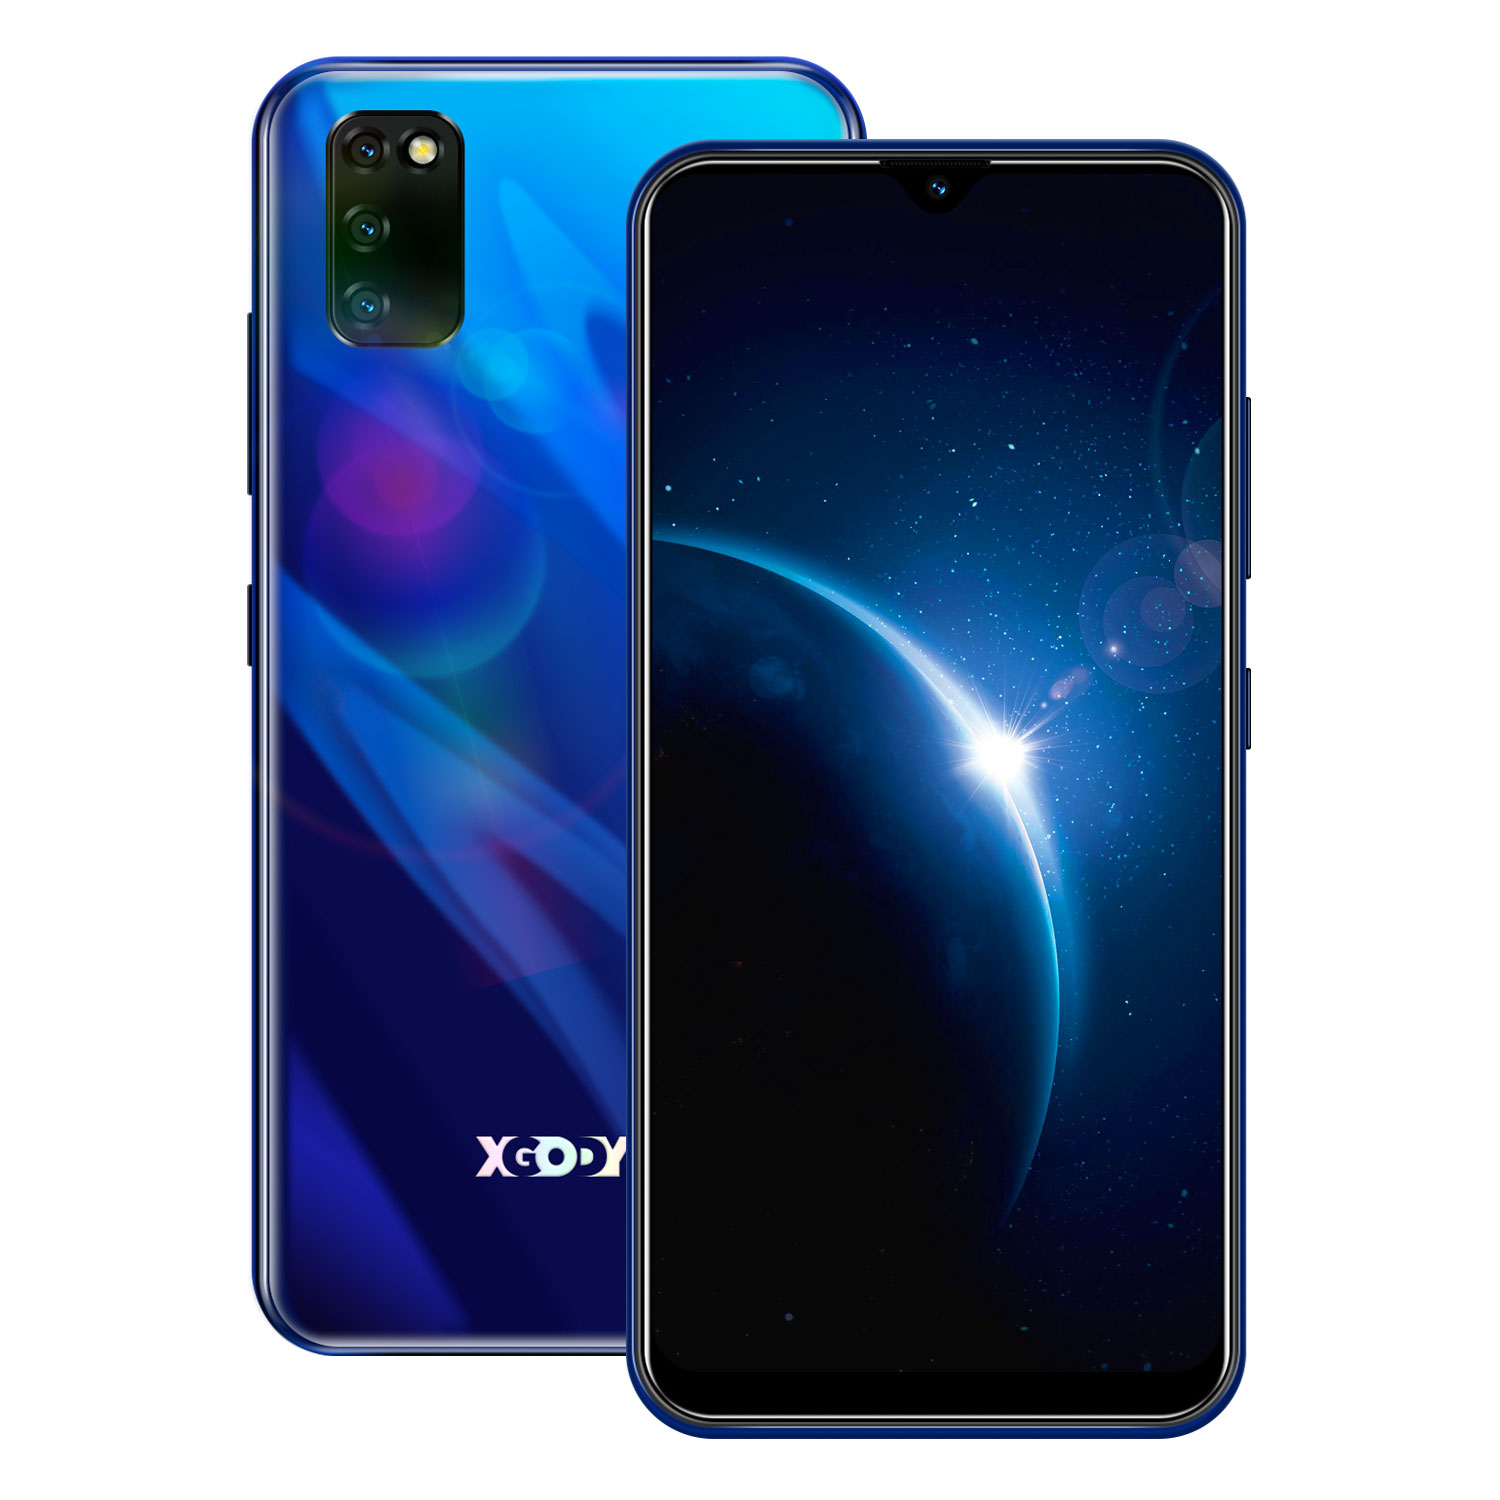 XGODY M30s 4G Smartphone Android 9.0 6.3